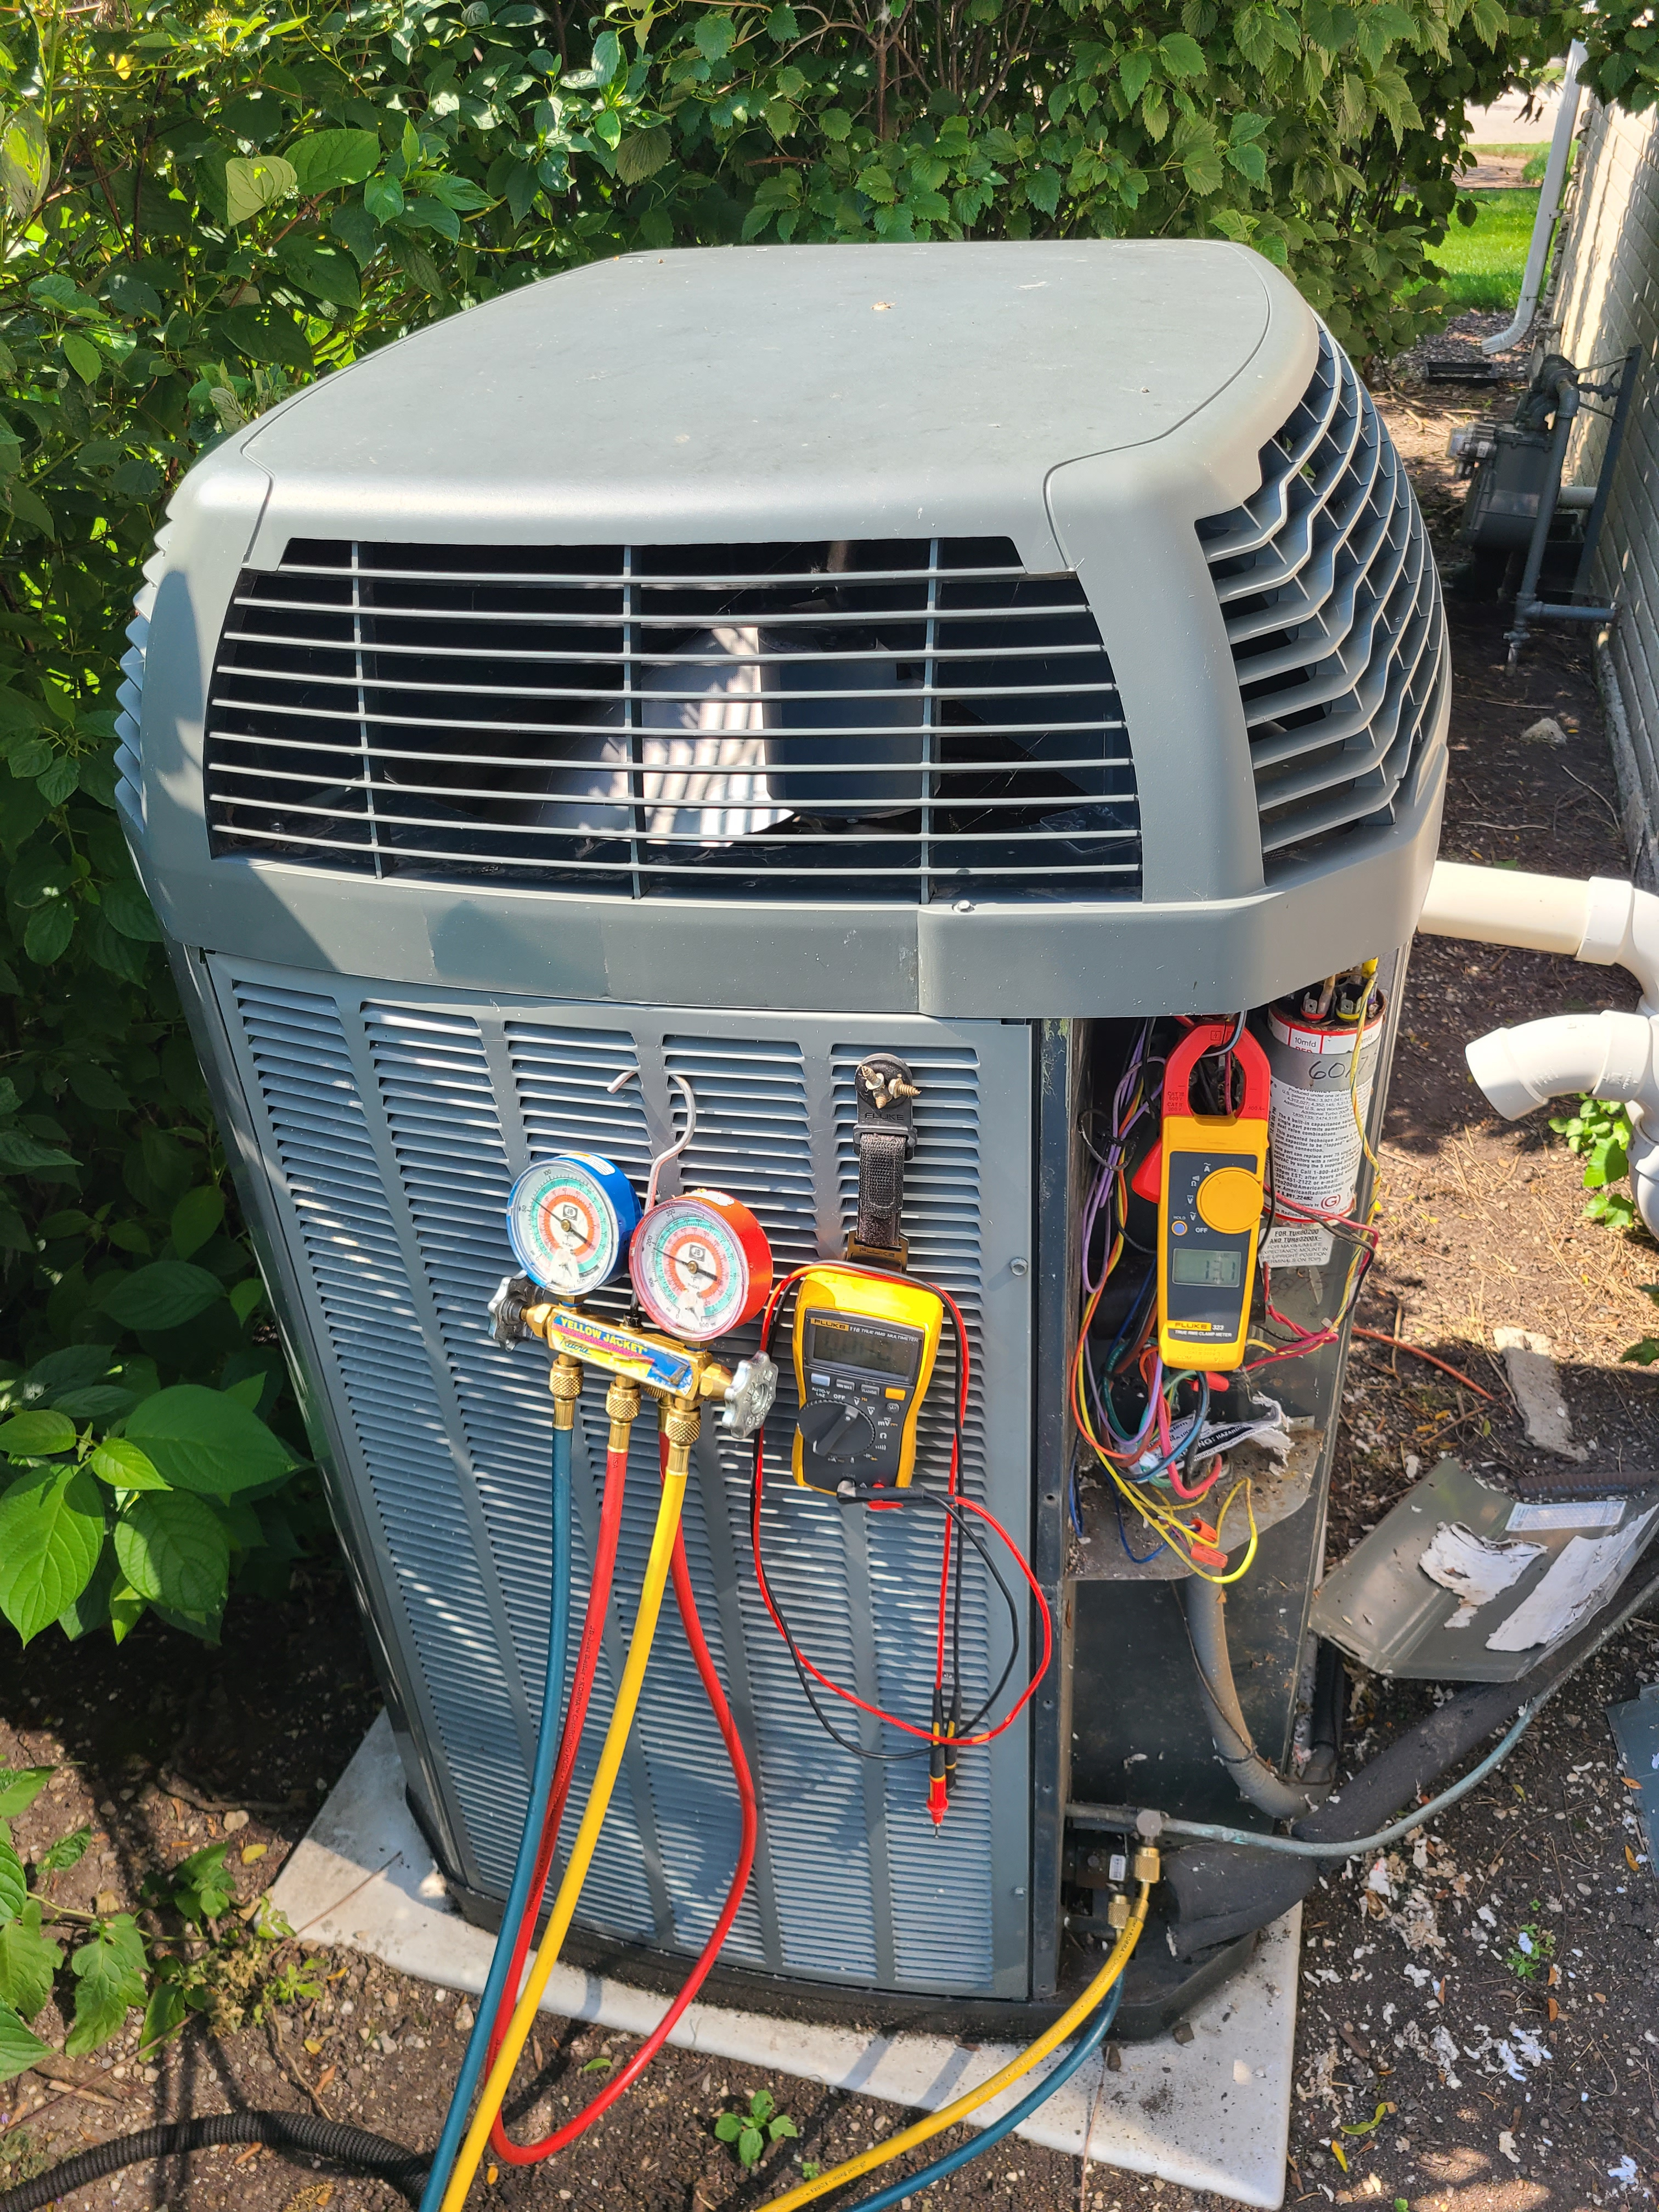 Trane ac maintenance and repair. System cleaned and checked and ready for summer.